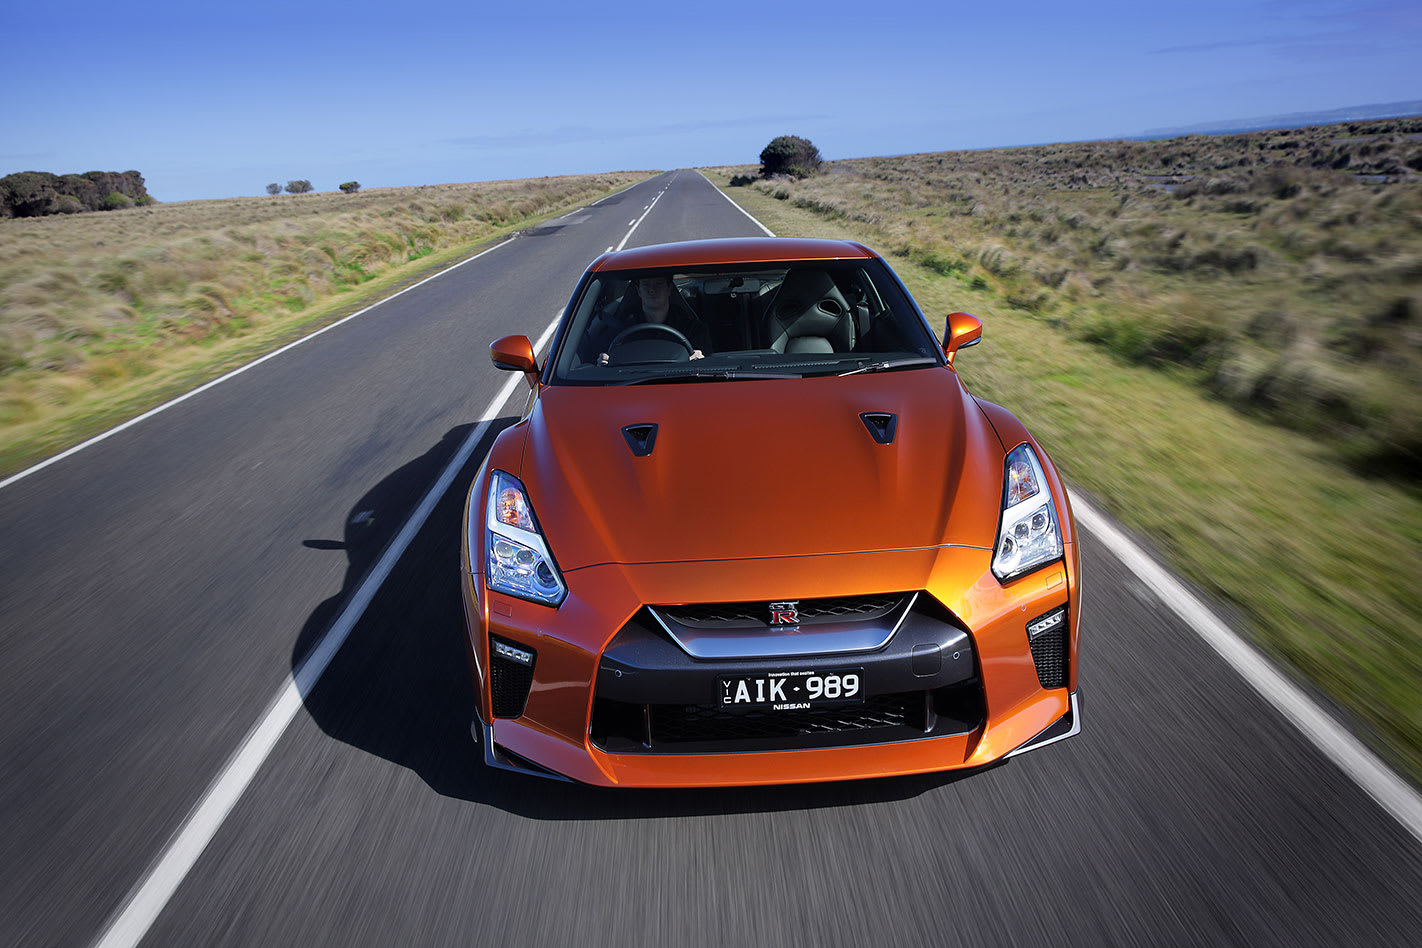 2017-Nissan GT-R tracking